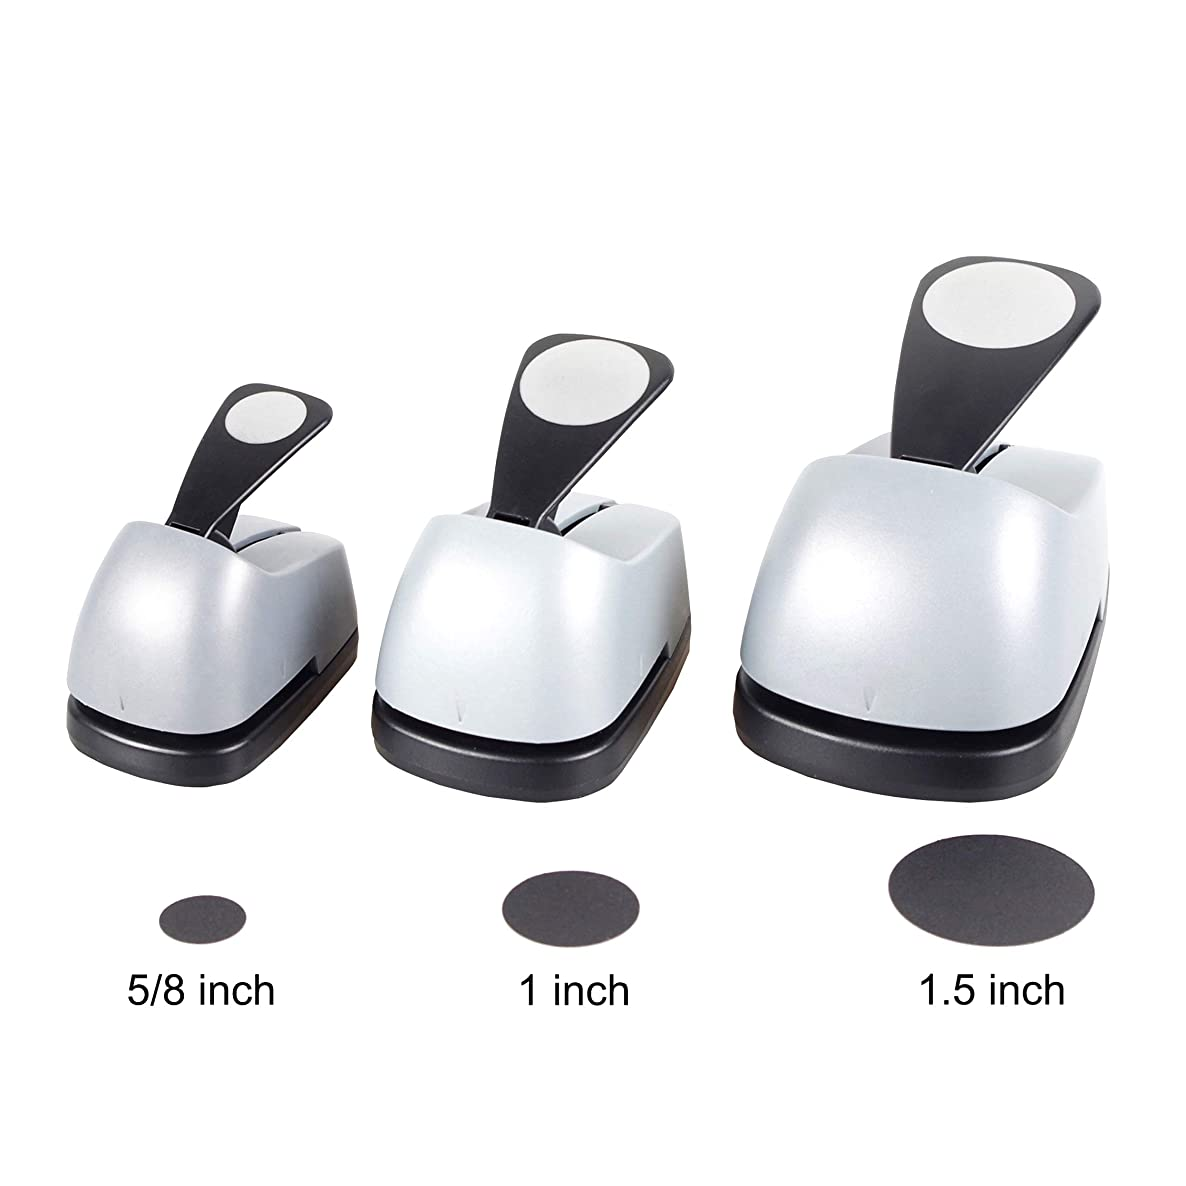 Circle Punch 1.5inch + 1 inch + 5/8 inch Craft Lever Punch Handmade Paper Punch(1inch+0.625inch Circle)